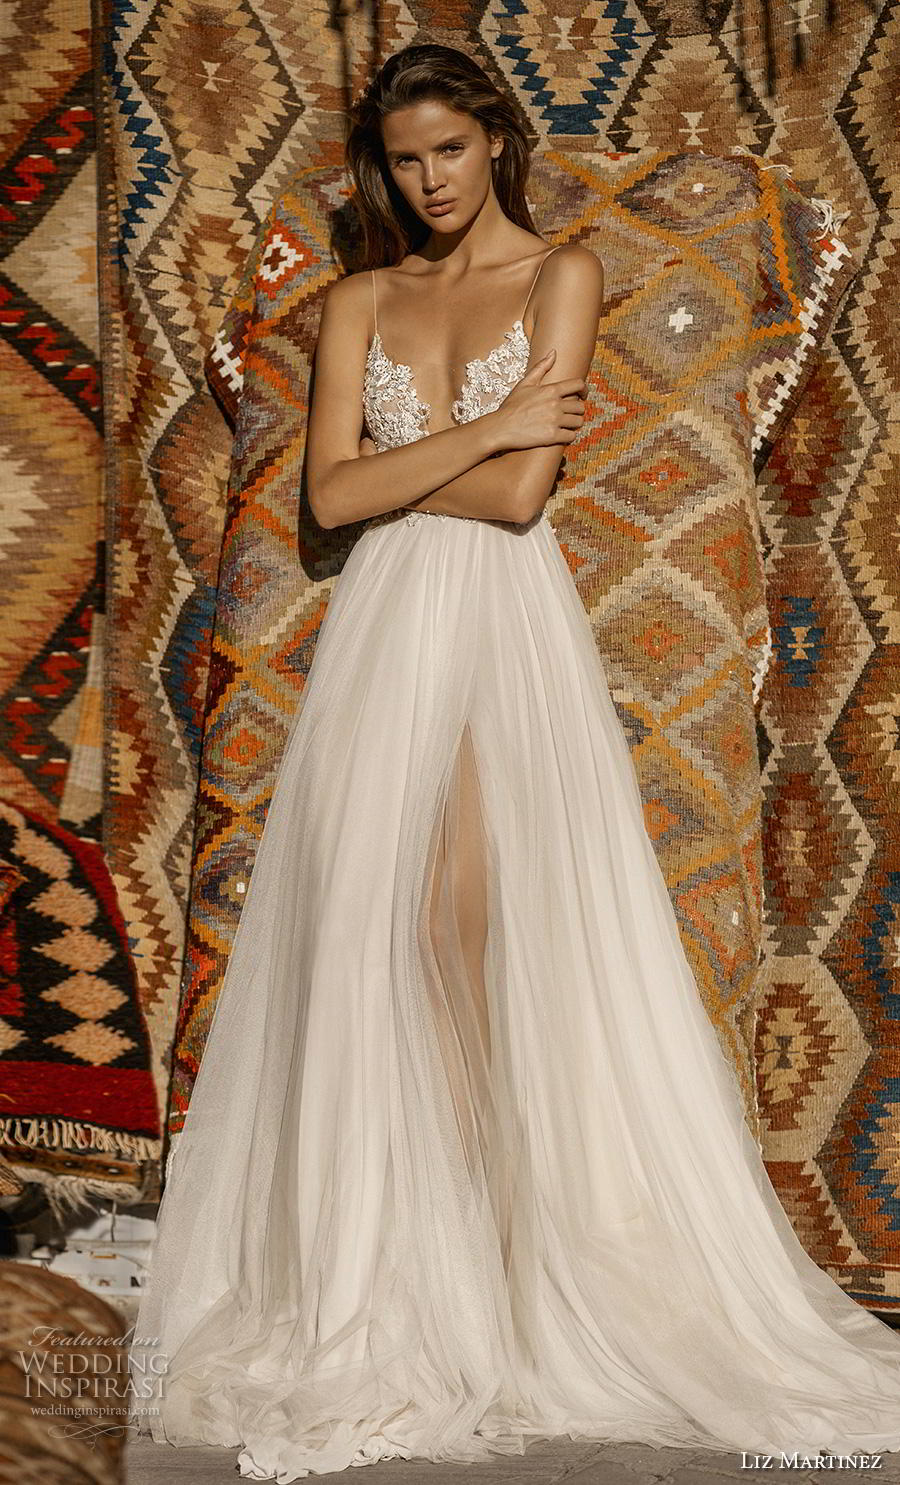 liz martinez 2019 cappadocia bridal spaghetti strap deep plunging sweetheart neckline heavily embellished bodice tulle skirt romantic a  line wedding dress backless chapel train (3) mv